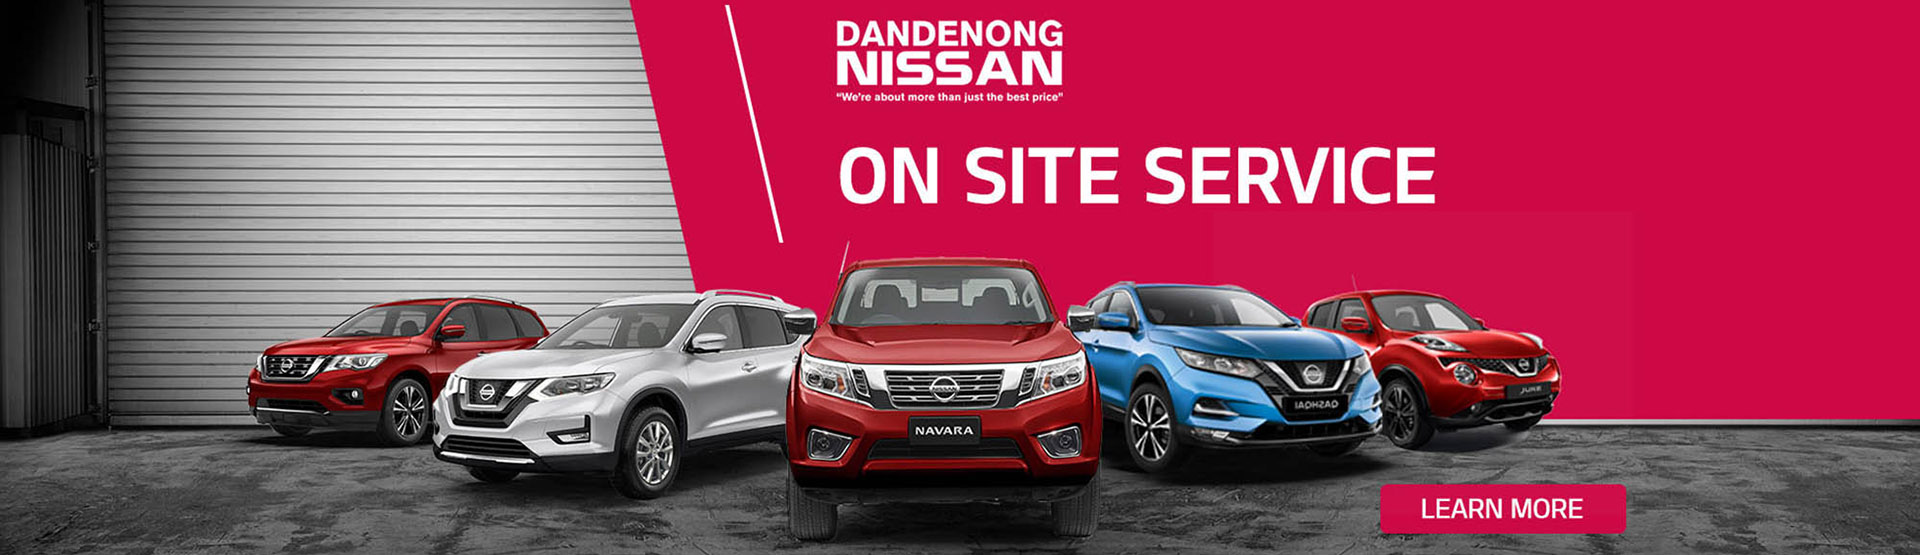 Dandenong Nissan Onsite Service